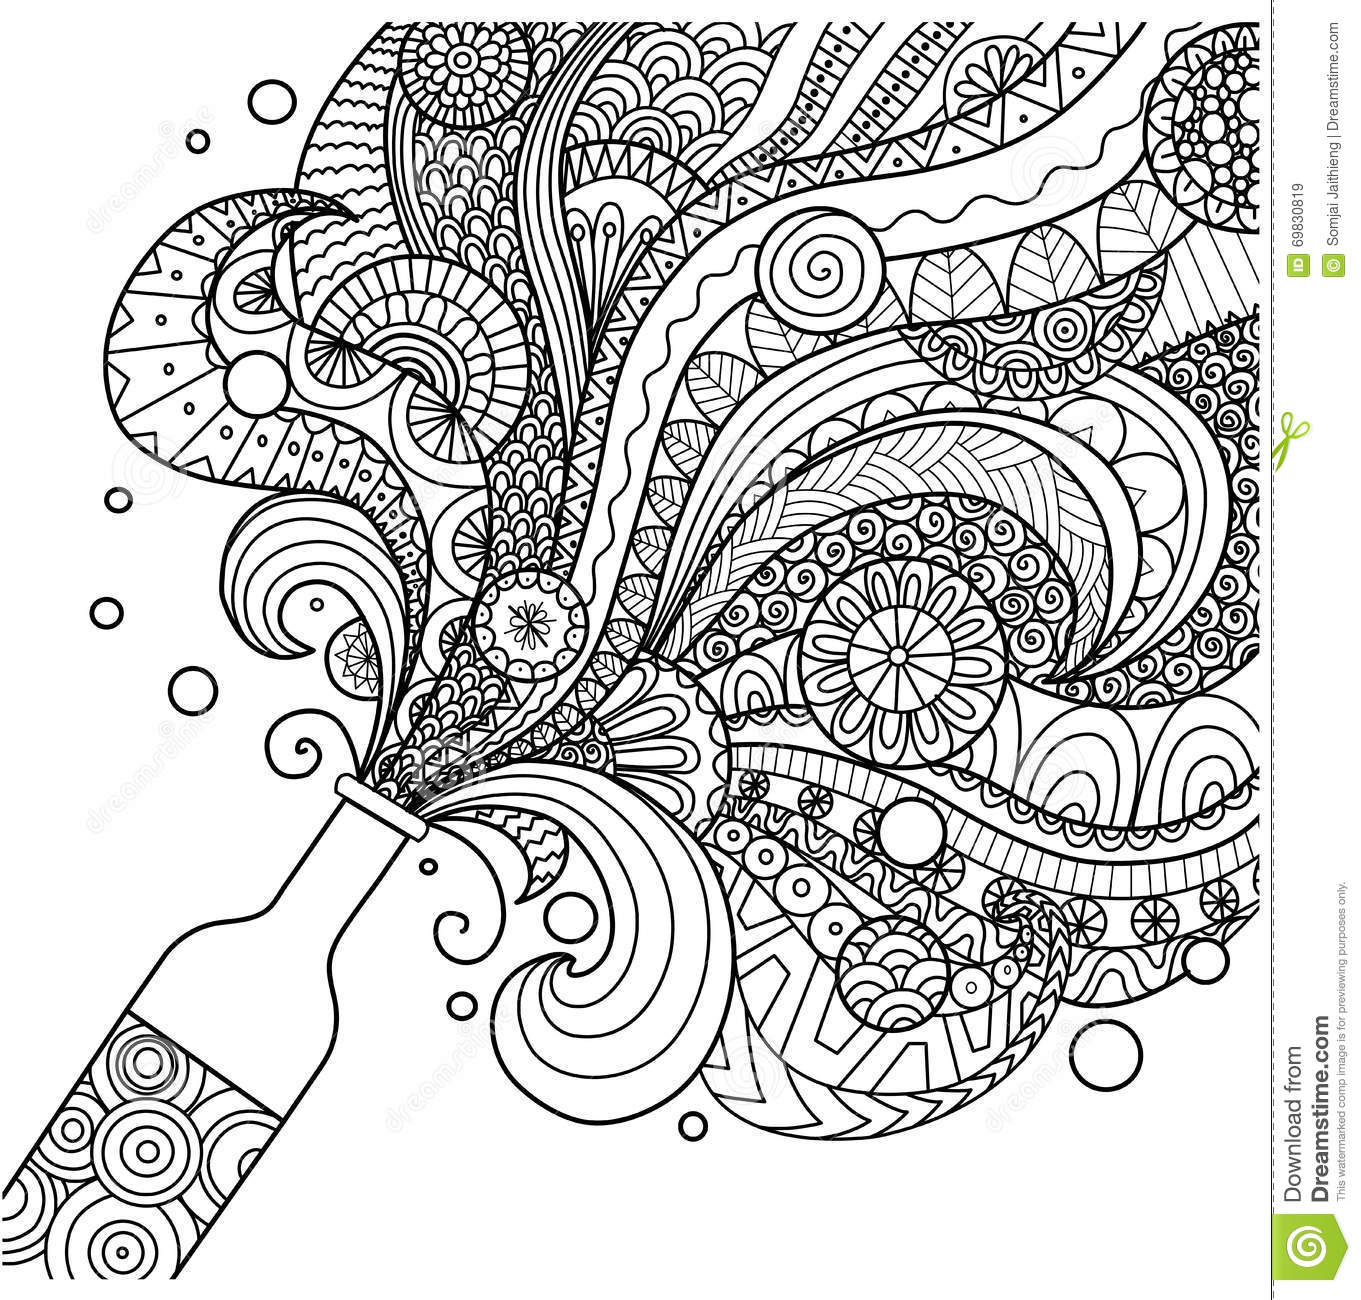 Line Drawing Designs : Line art design clipground